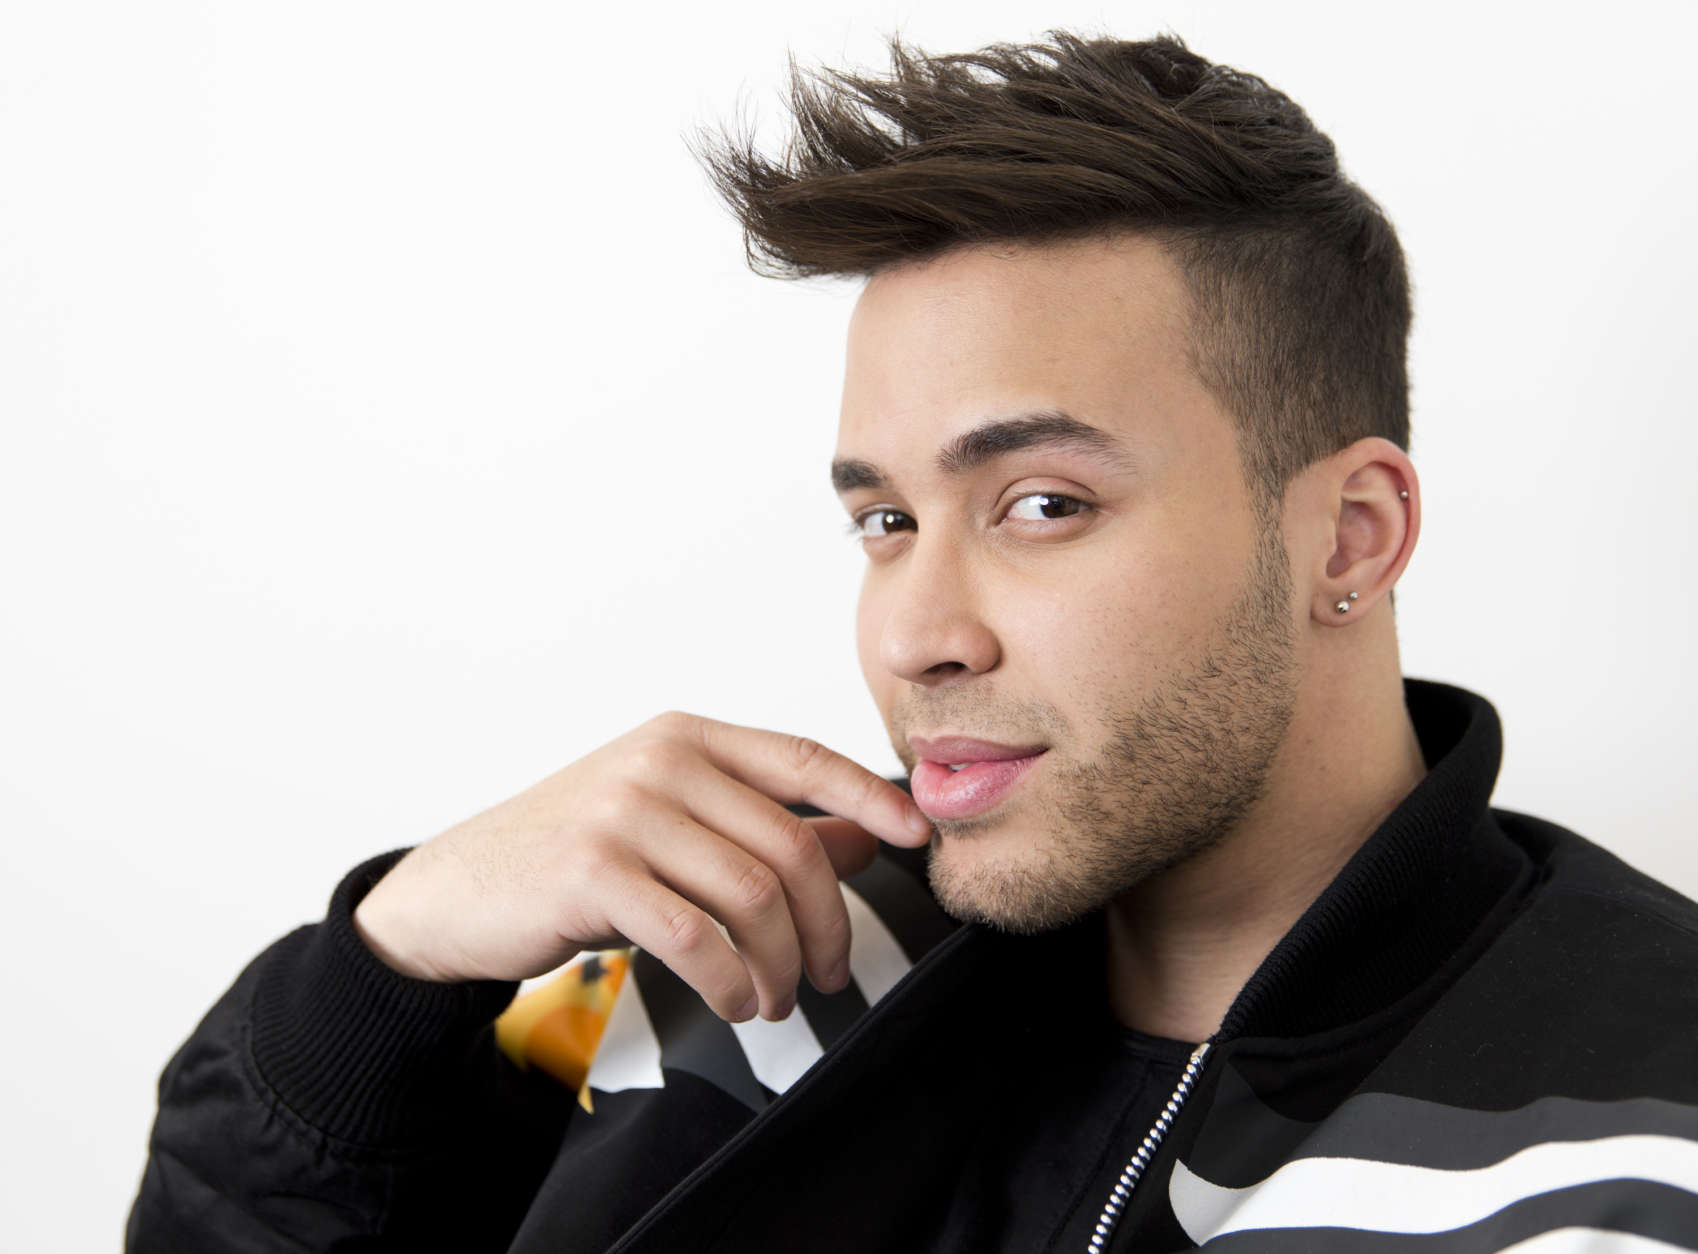 Singer Prince Royce is 28 on May 11.  Singer Prince Royce poses for a portrait on Monday, Feb. 27, 2017, in New York. (Photo by Brian Ach/Invision/AP)